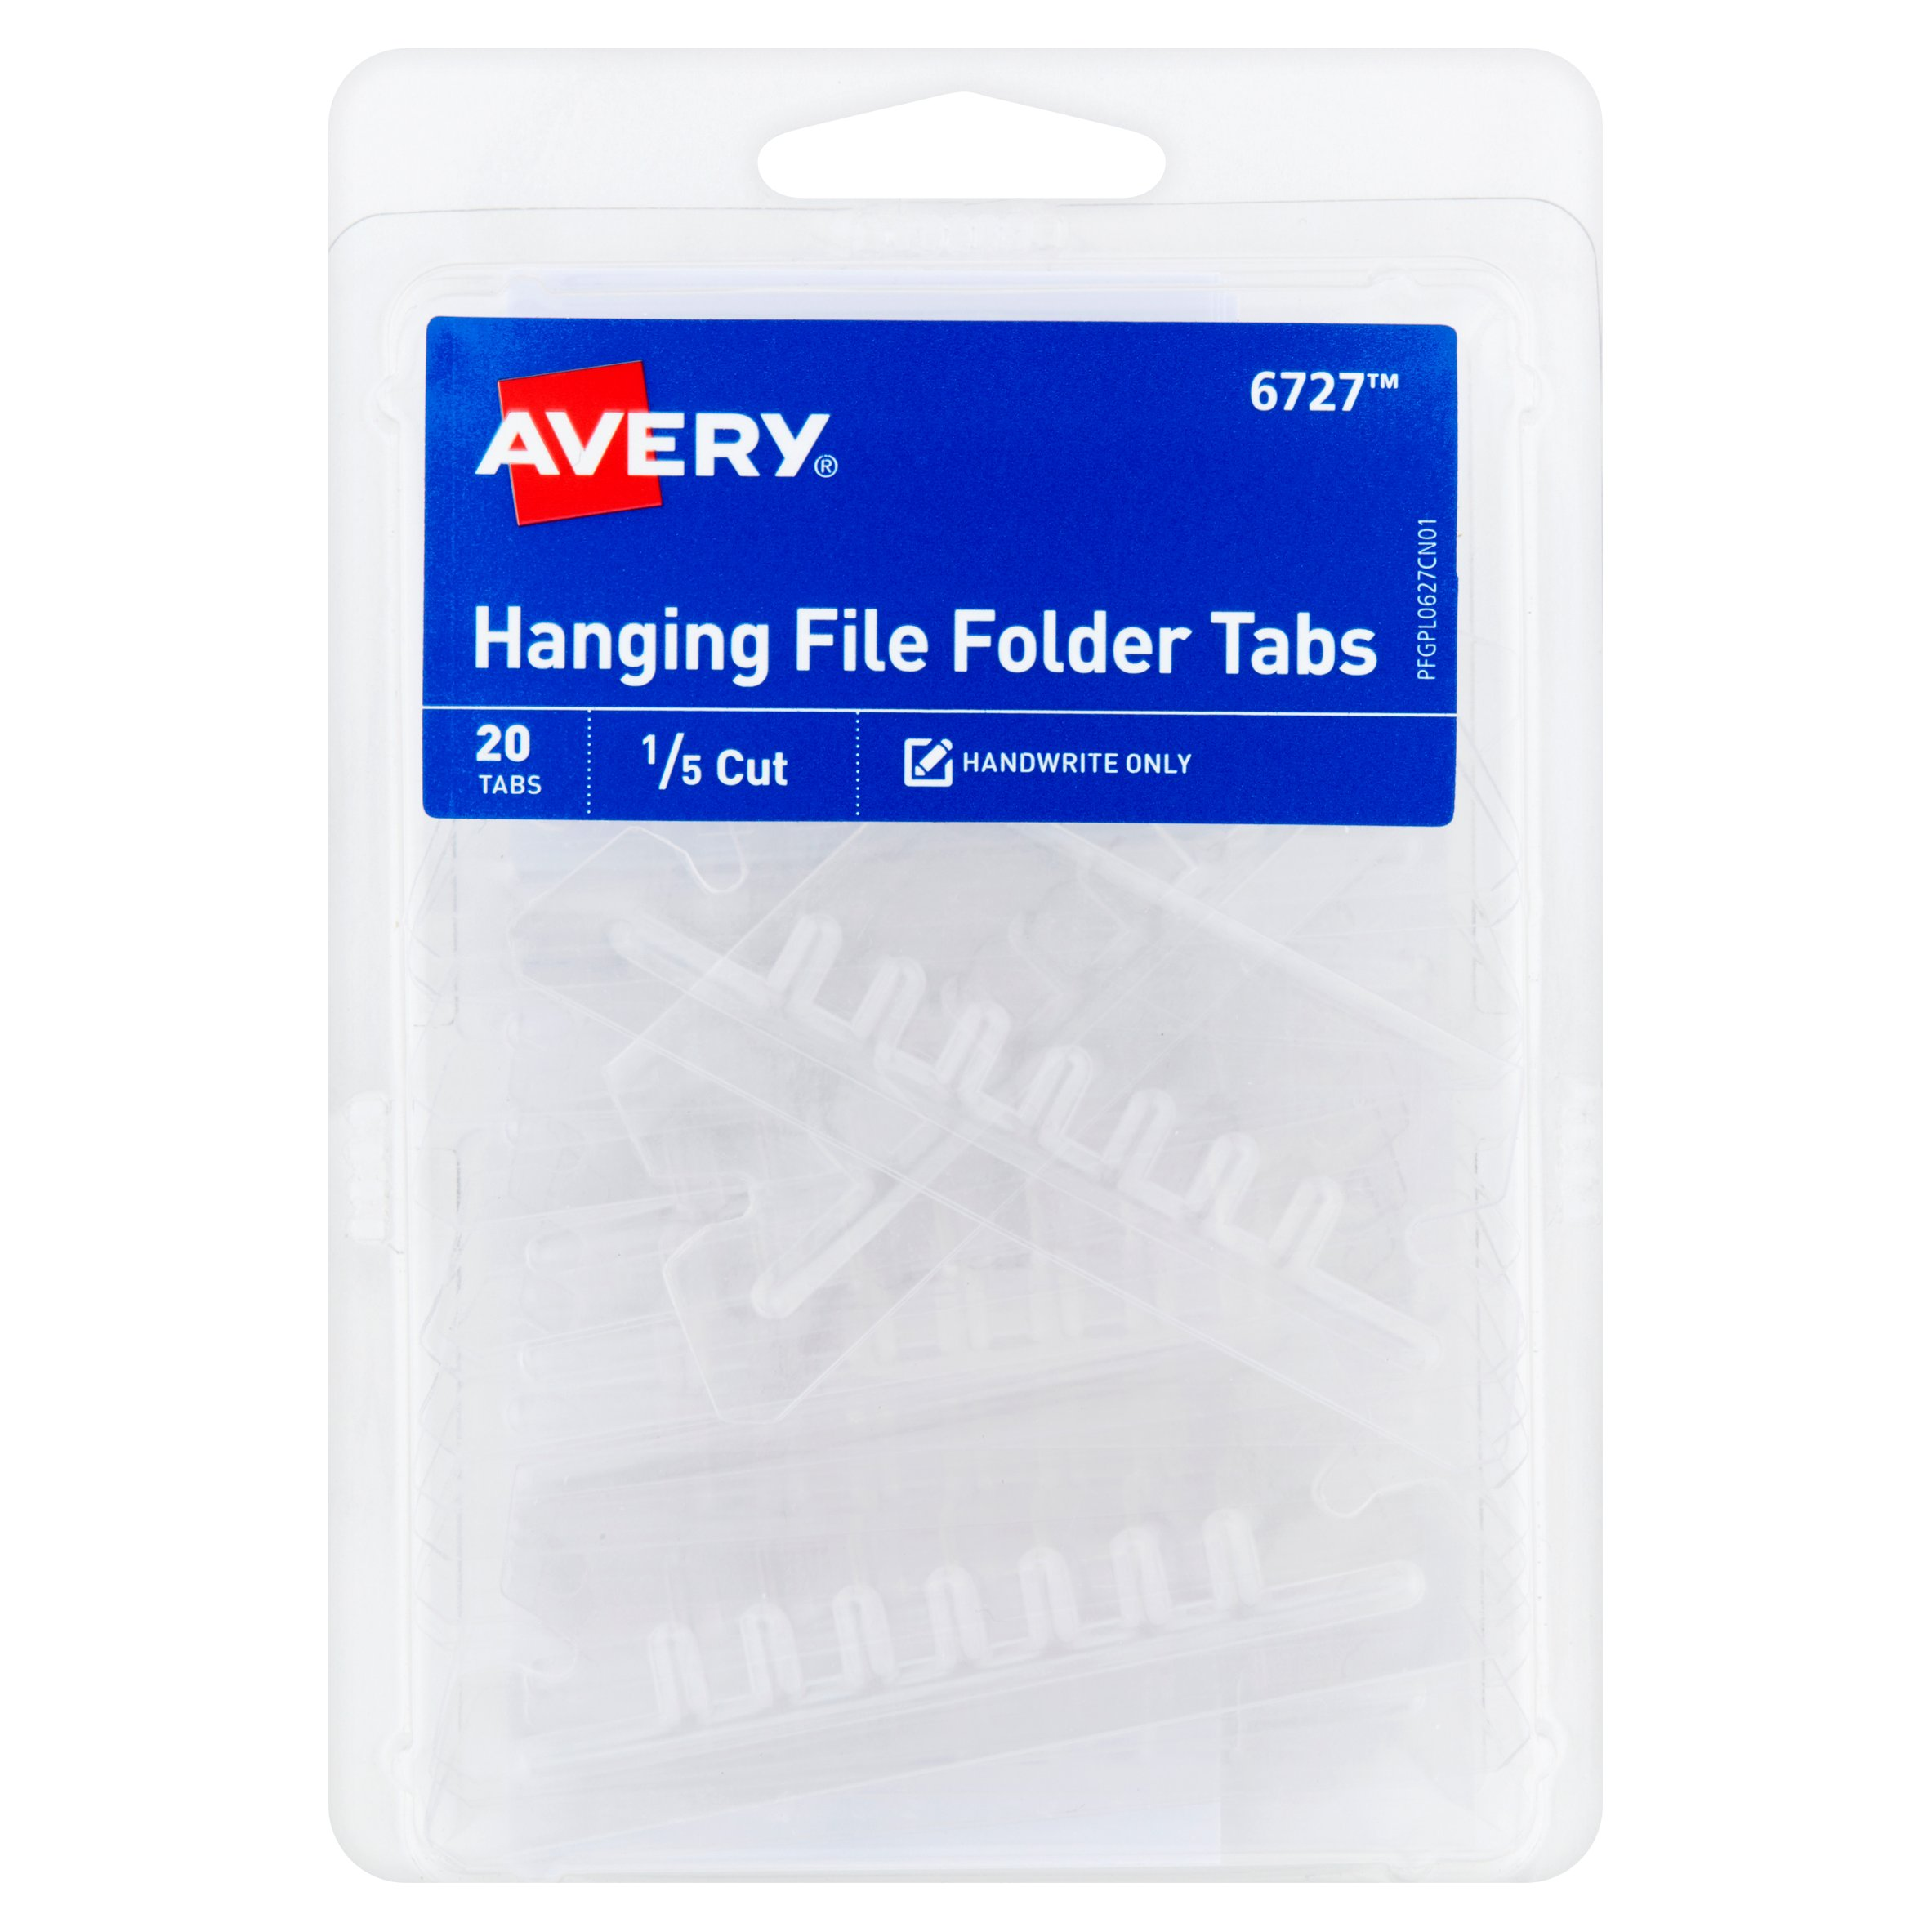 (4 Pack) Avery(R) Insertable Hanging File Folder Tabs 06727, Pack of 20